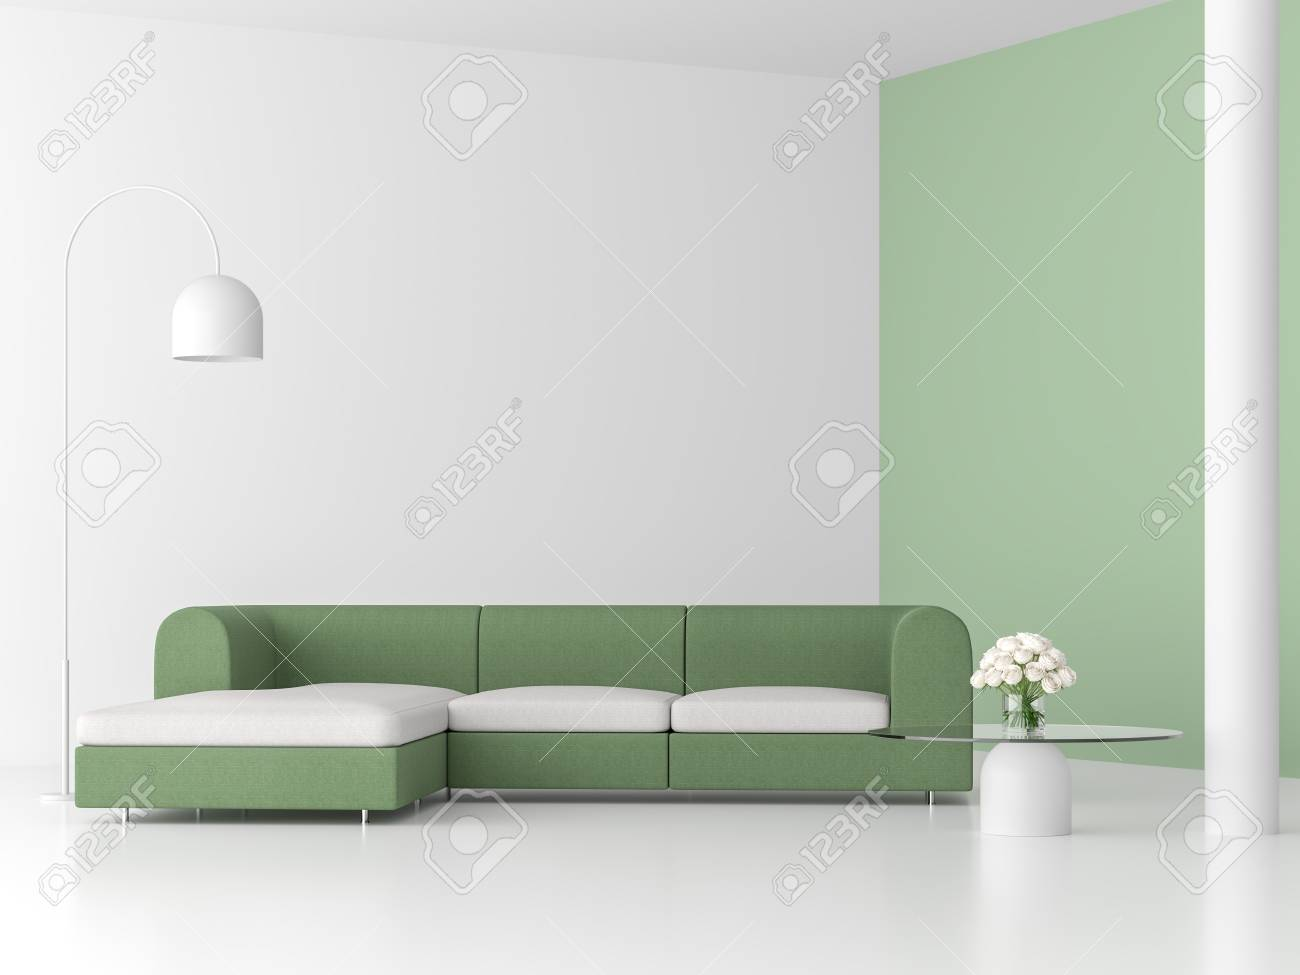 Minimal Style Living Room 3d Renderthere Are White Floorpastel